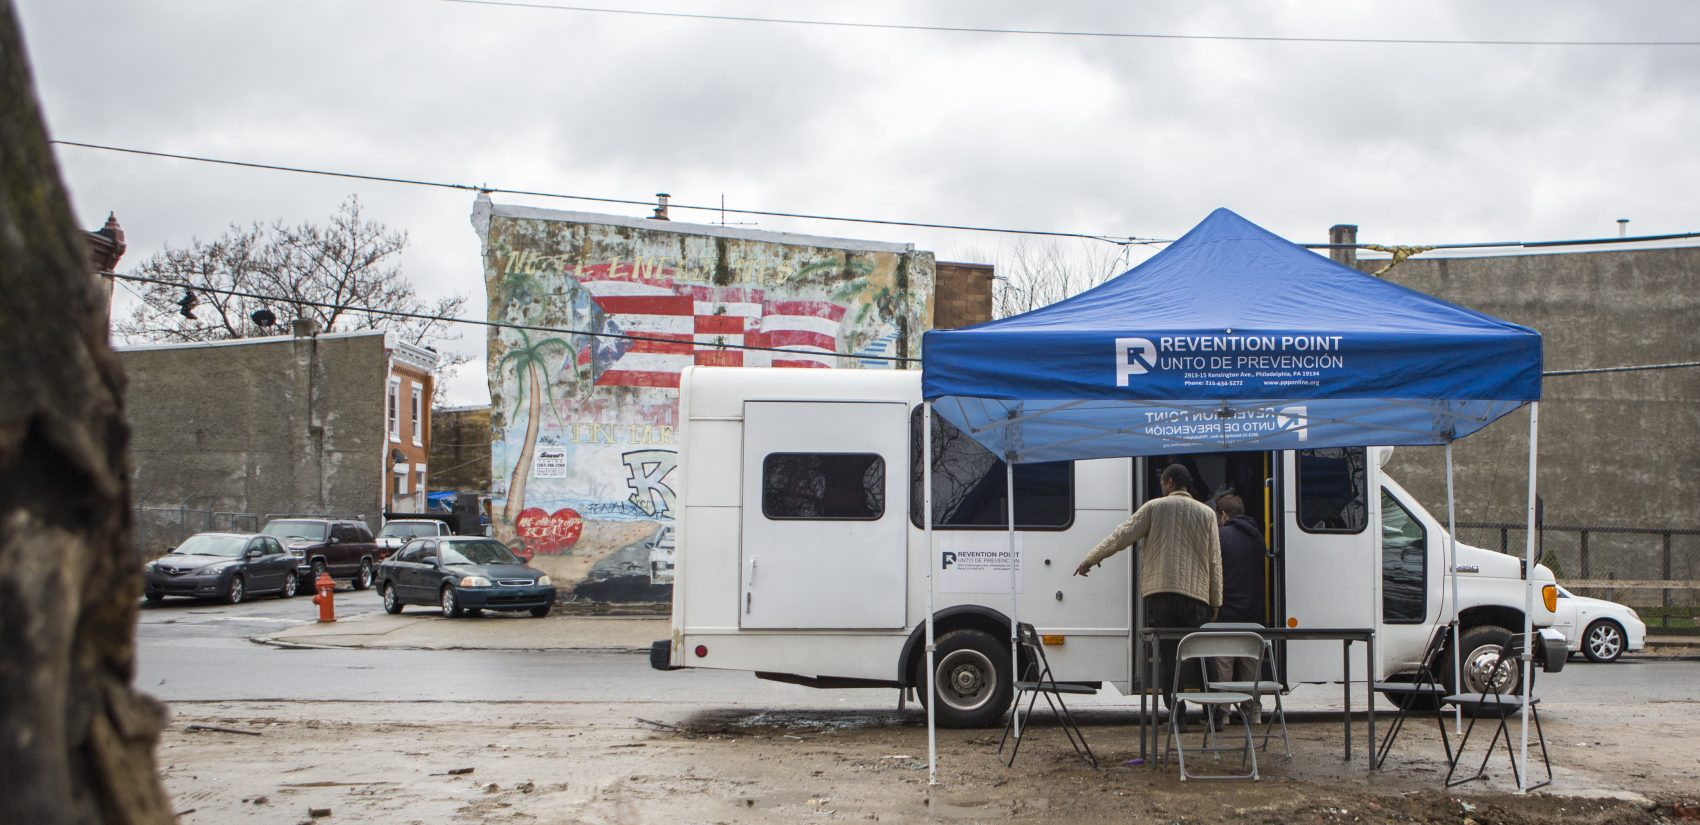 Prevention Point: a social services organization in Philadelphia, sets up a mobile wound care clinic each week to tend to homeless residents in the Kensington area. (Jessica Kourkounis/For Keystone Crossroads)